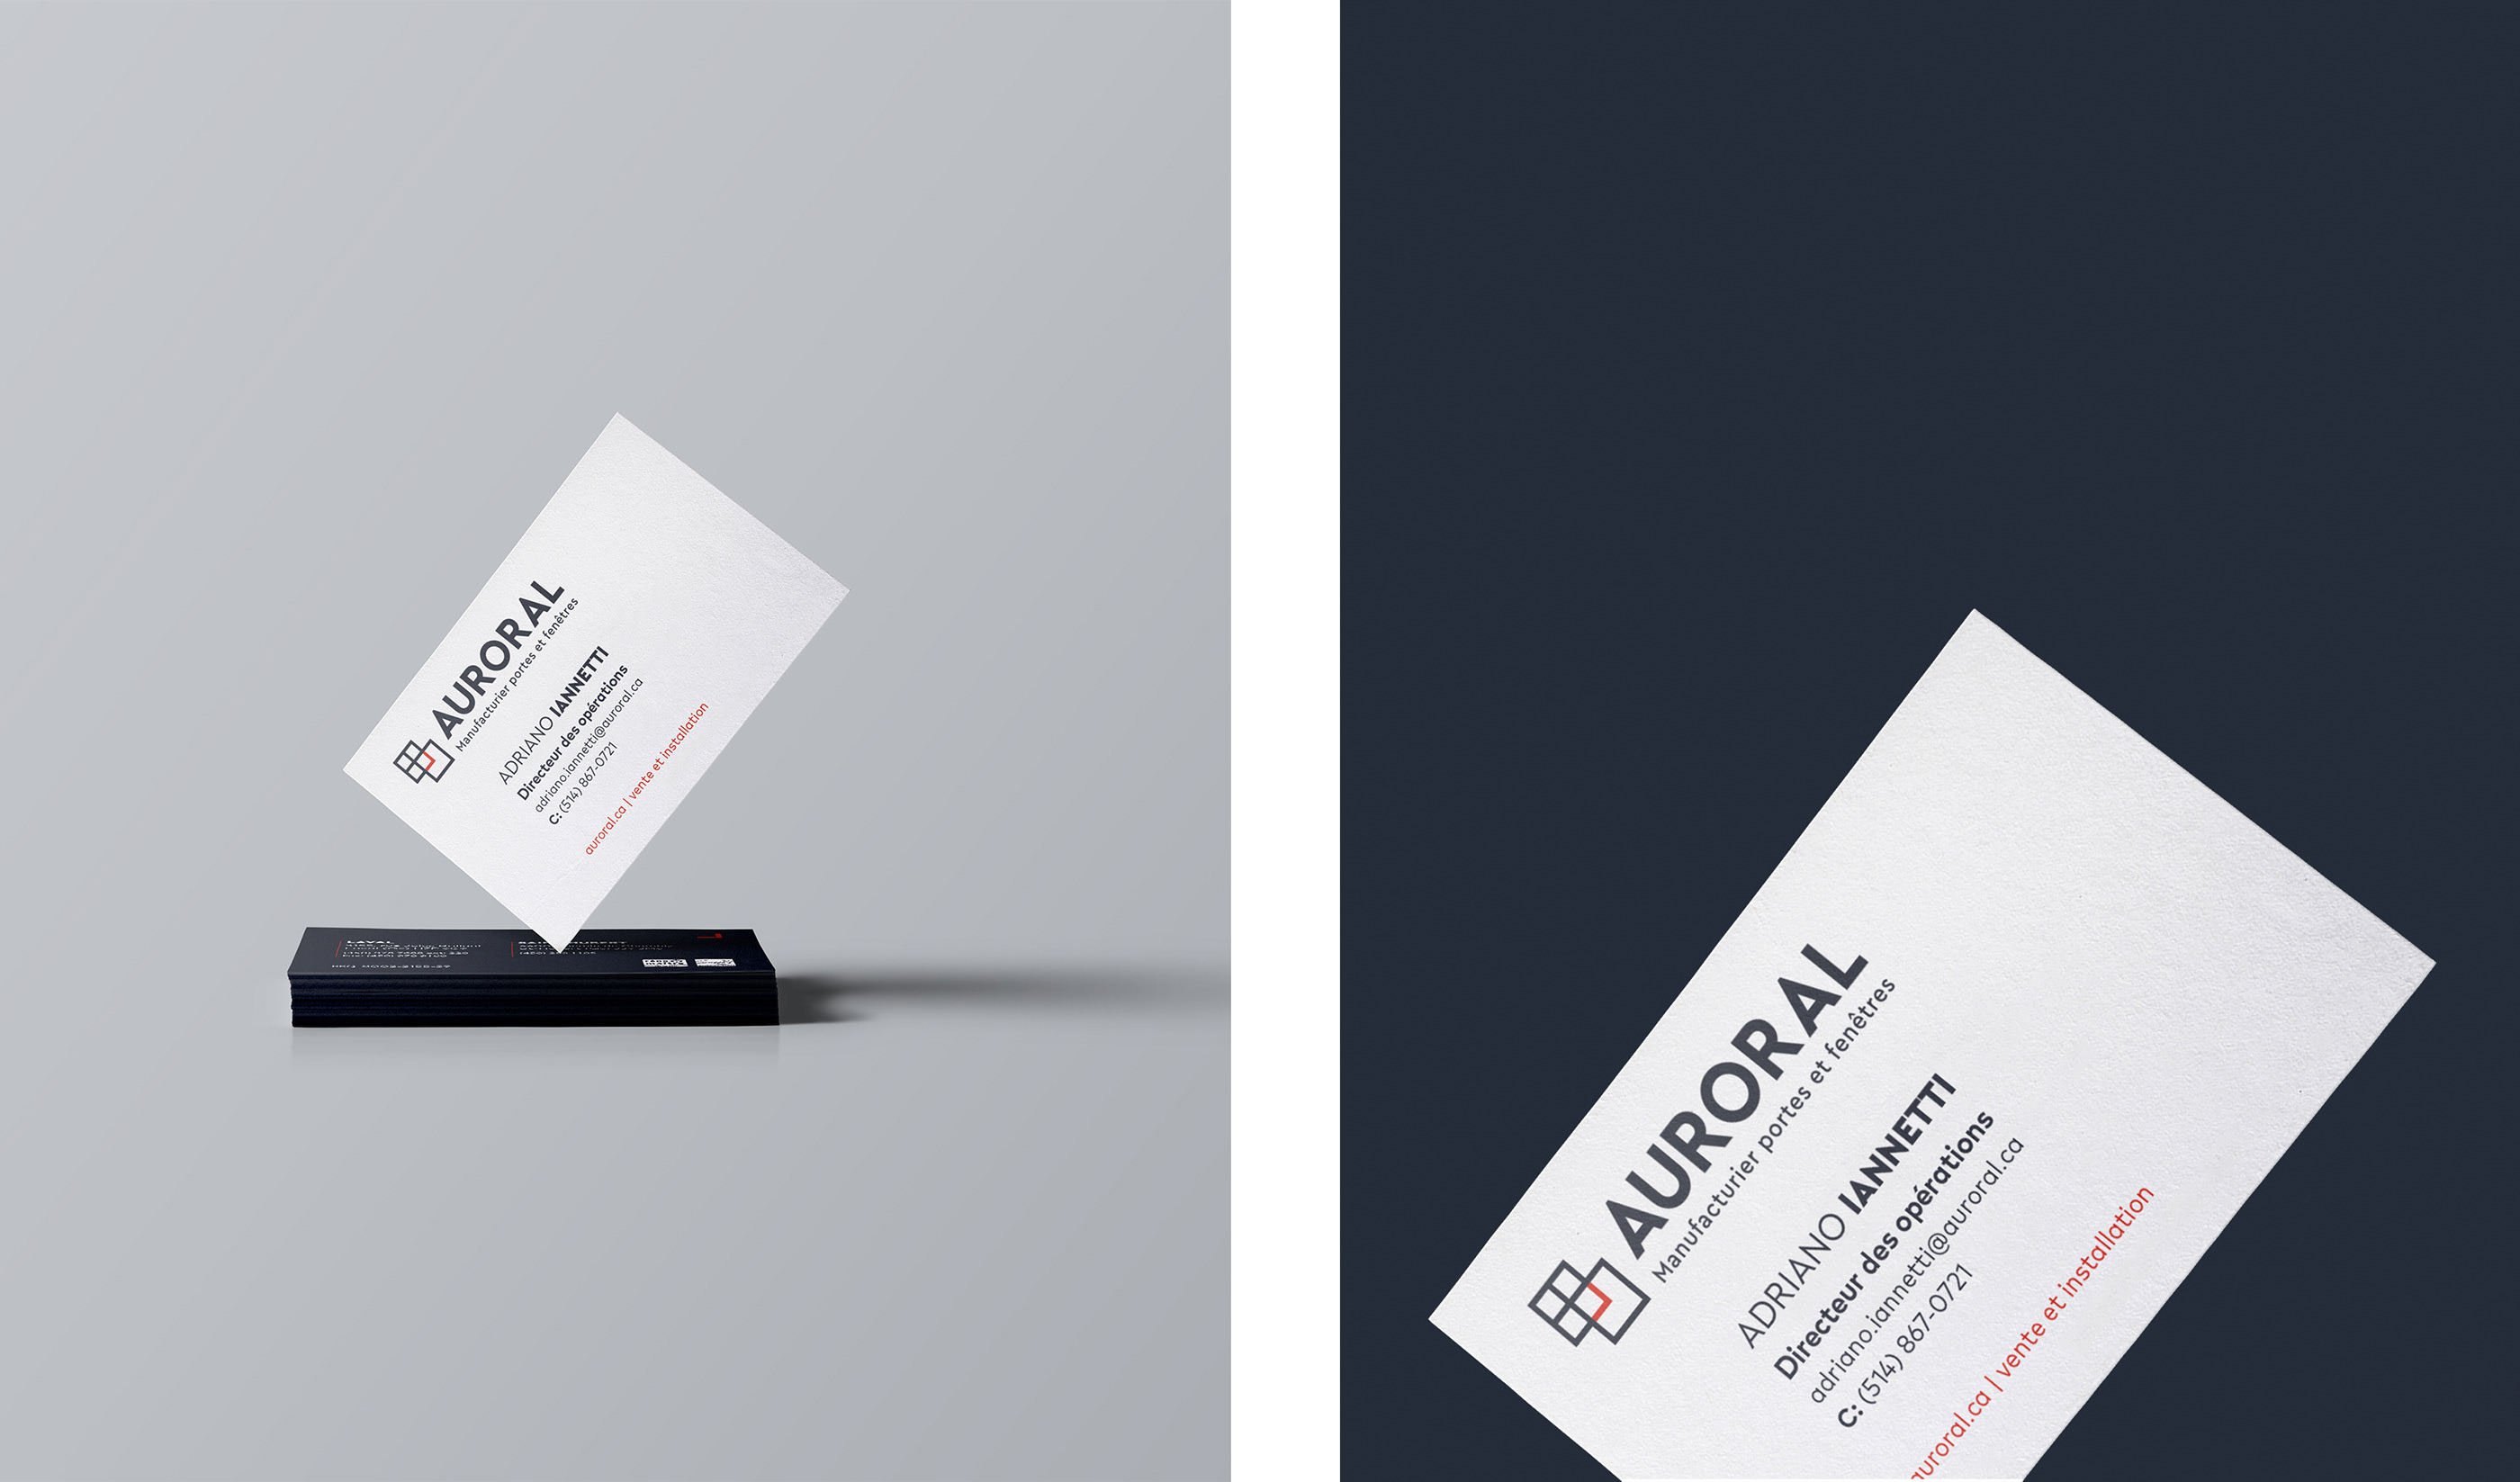 Porte Et Fenetre Auroral auroral | rebranding a 20+ years old business on behance